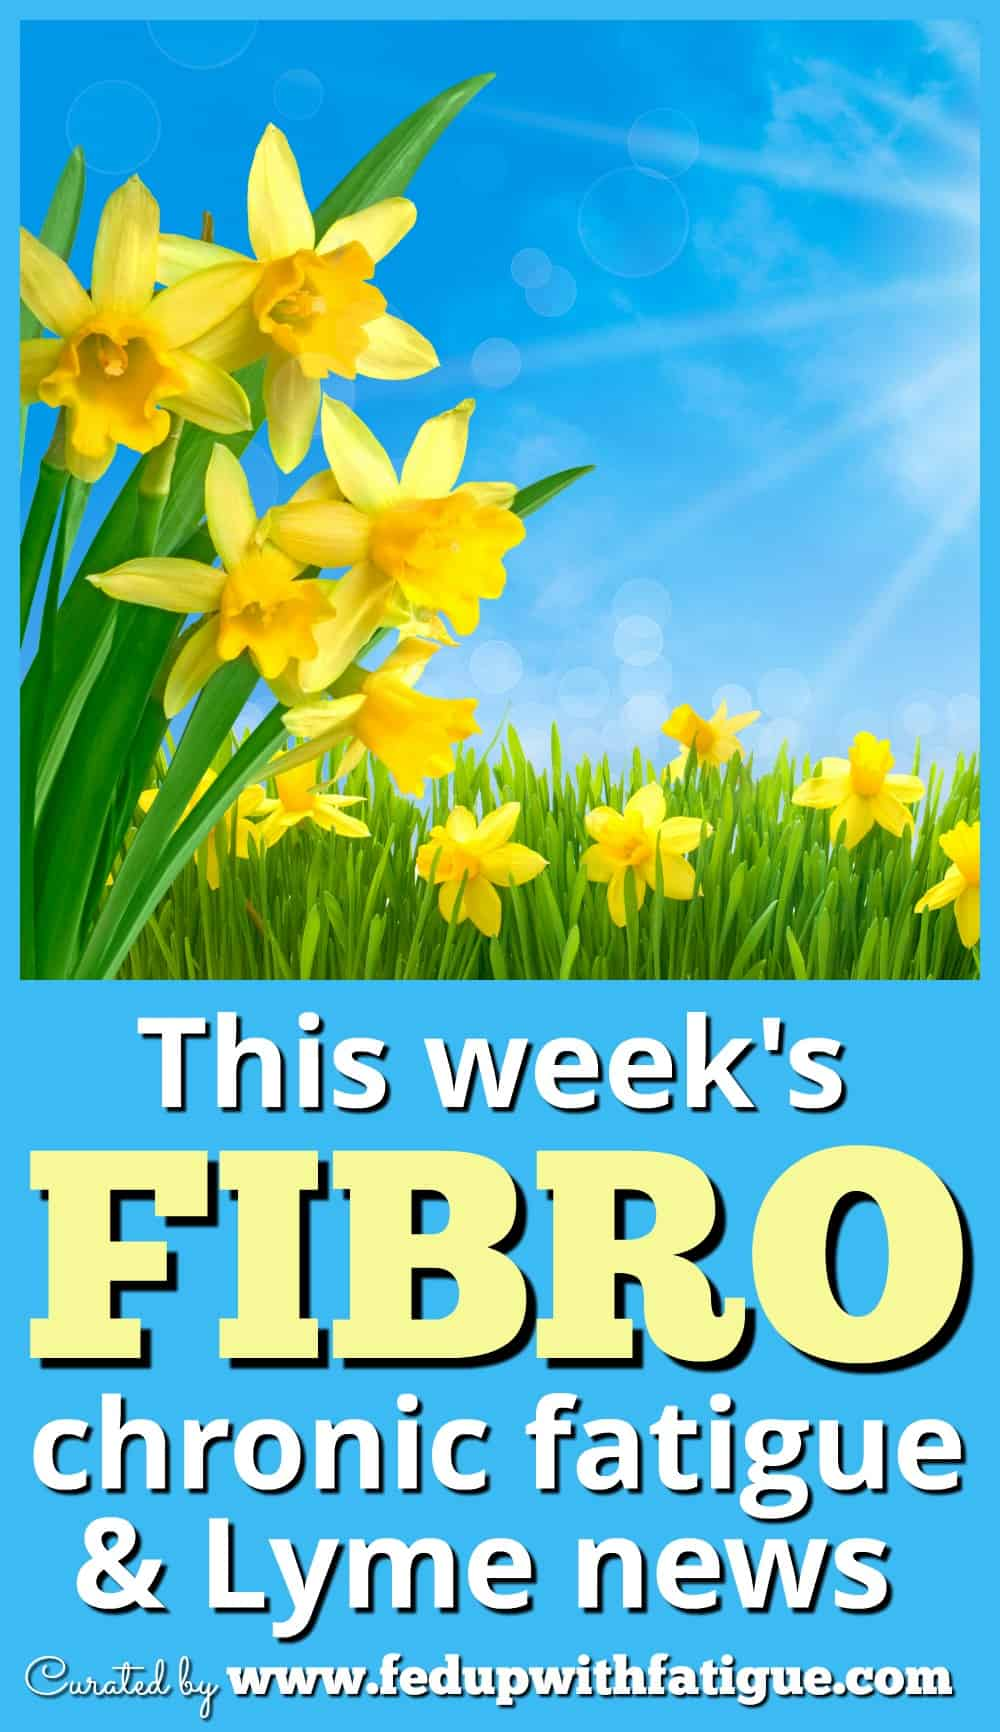 April 27, 2018 fibromyalgia, chronic fatigue & Lyme news | Fed Up with Fatigue